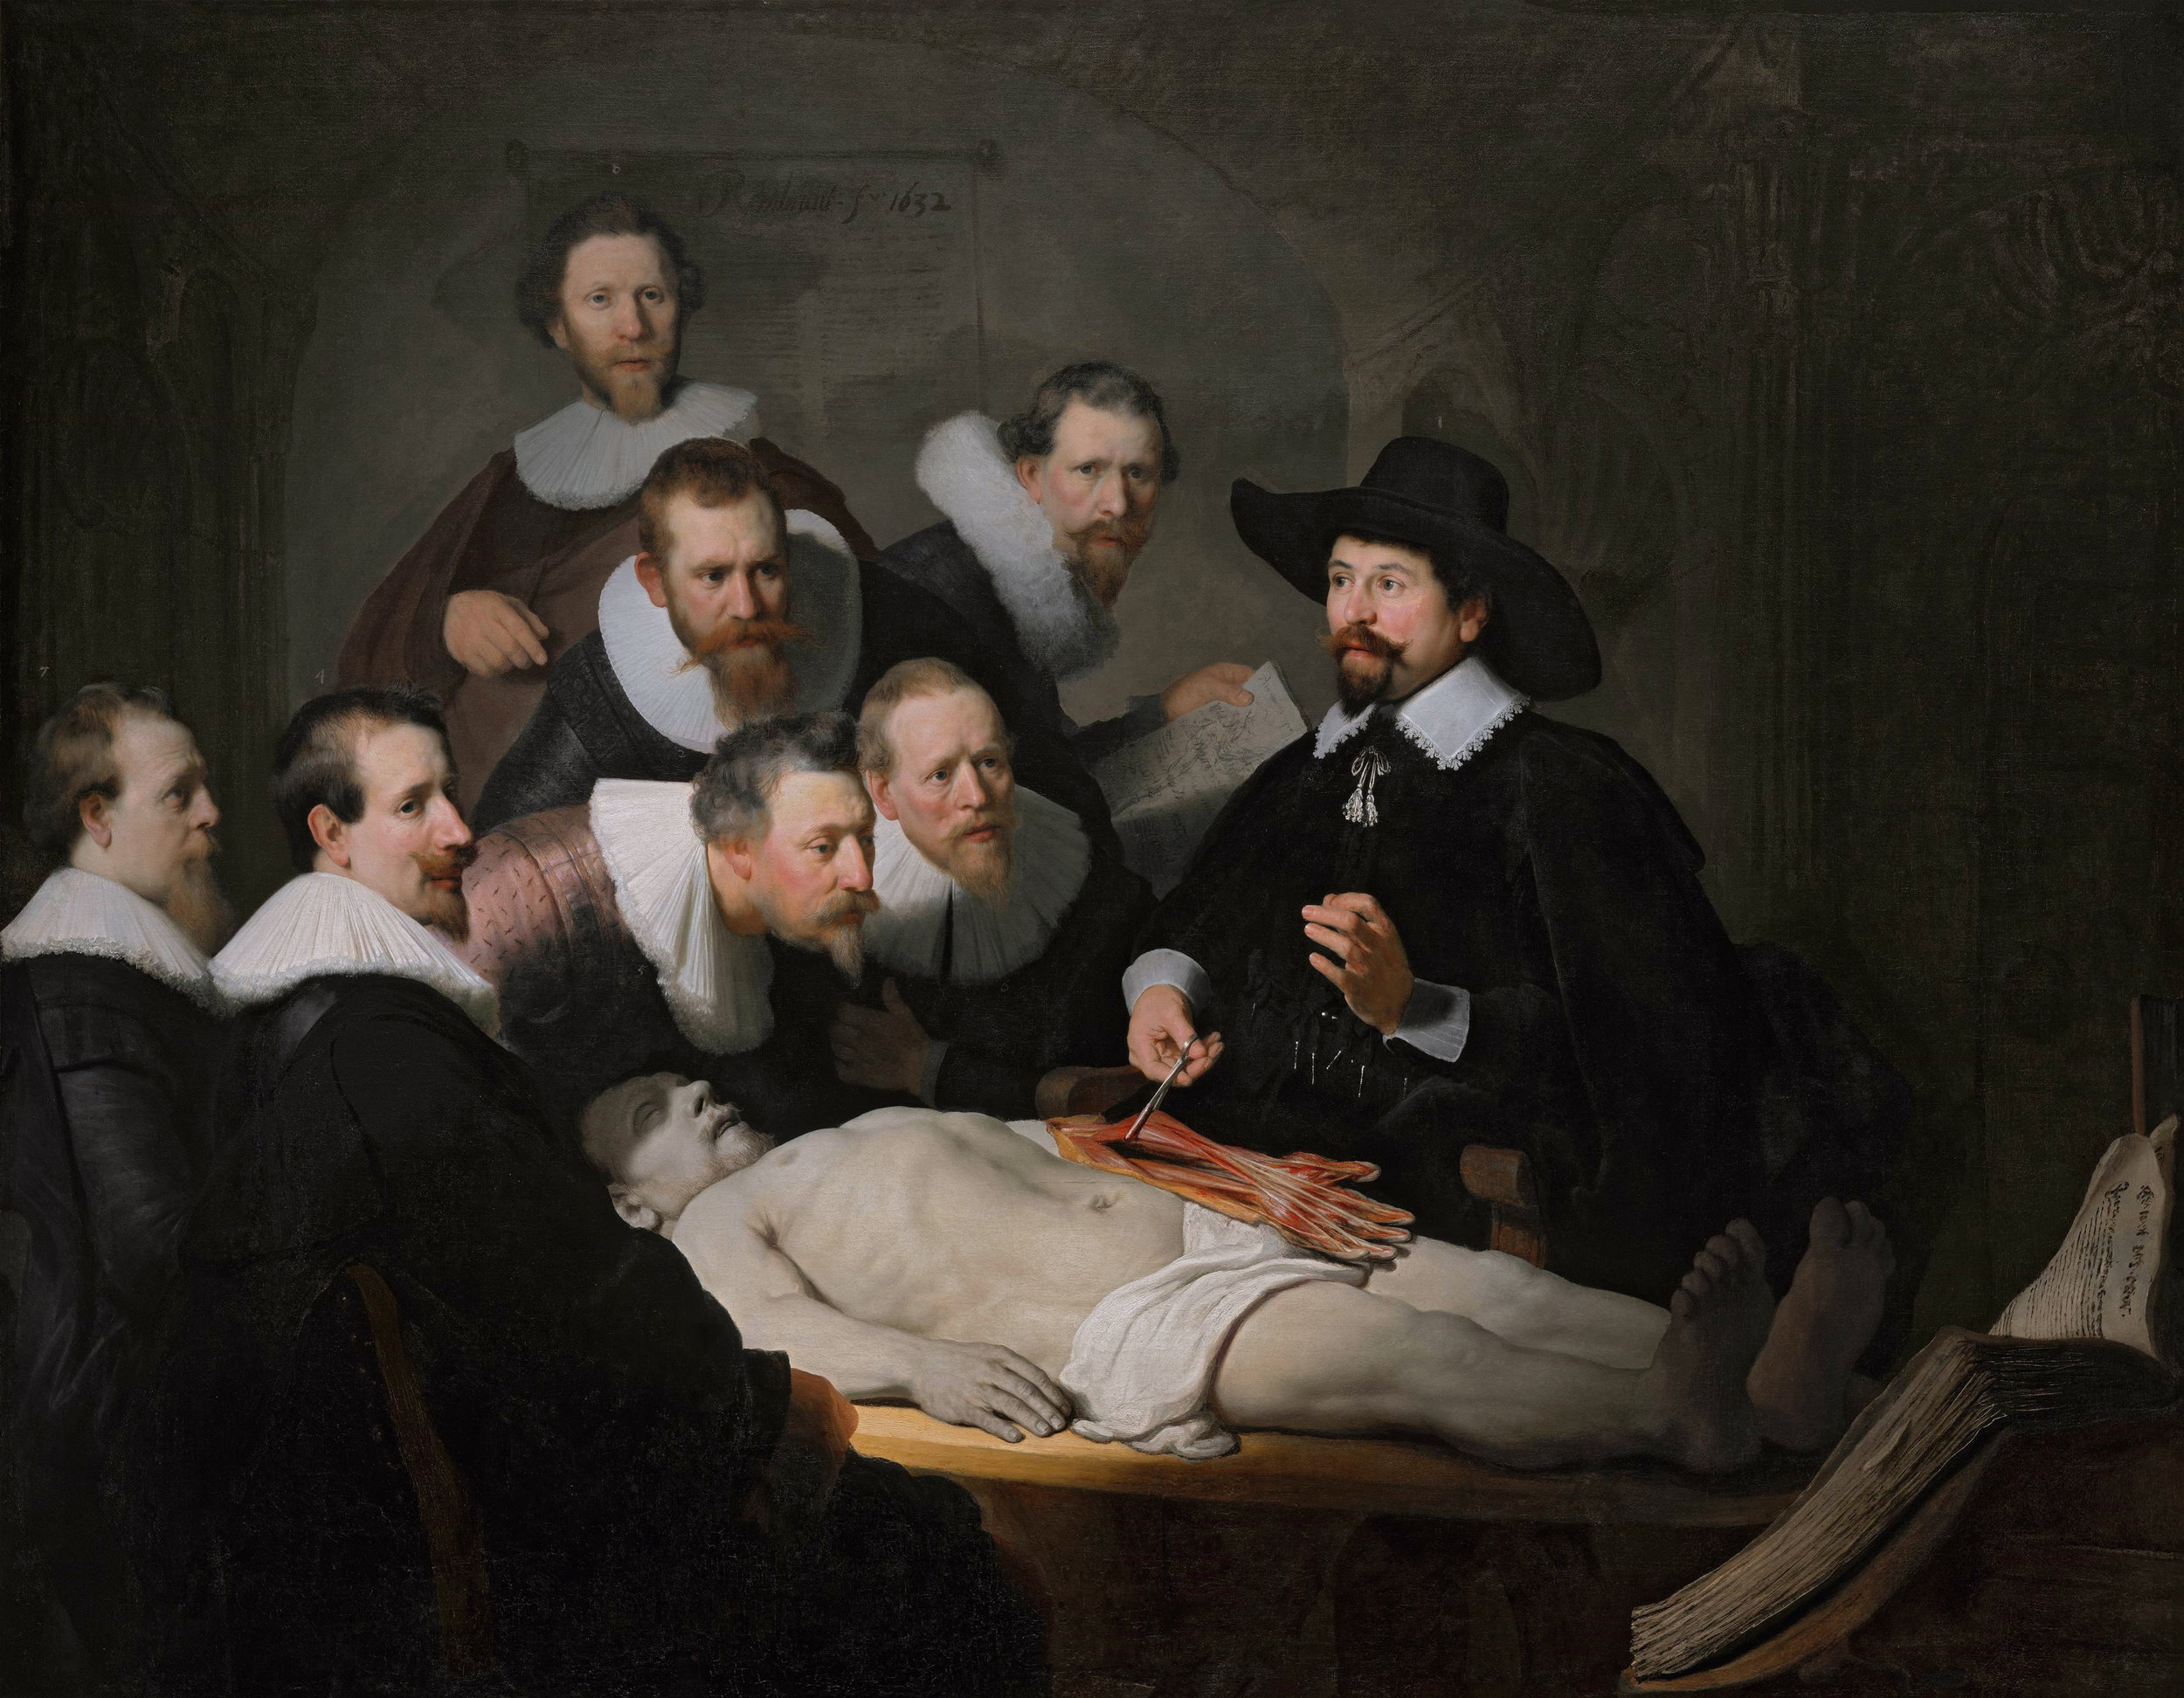 The Anatomy Lesson of Dr. Nicolaes Tulp  depicts a 17th-century cadaver anatomy lesson. Incorporating exome sequencing into the practice of cadaver anatomy represents a significant update to the traditional medical school course. (image credit: Rembrandt van Rijn, 1632, public domain)